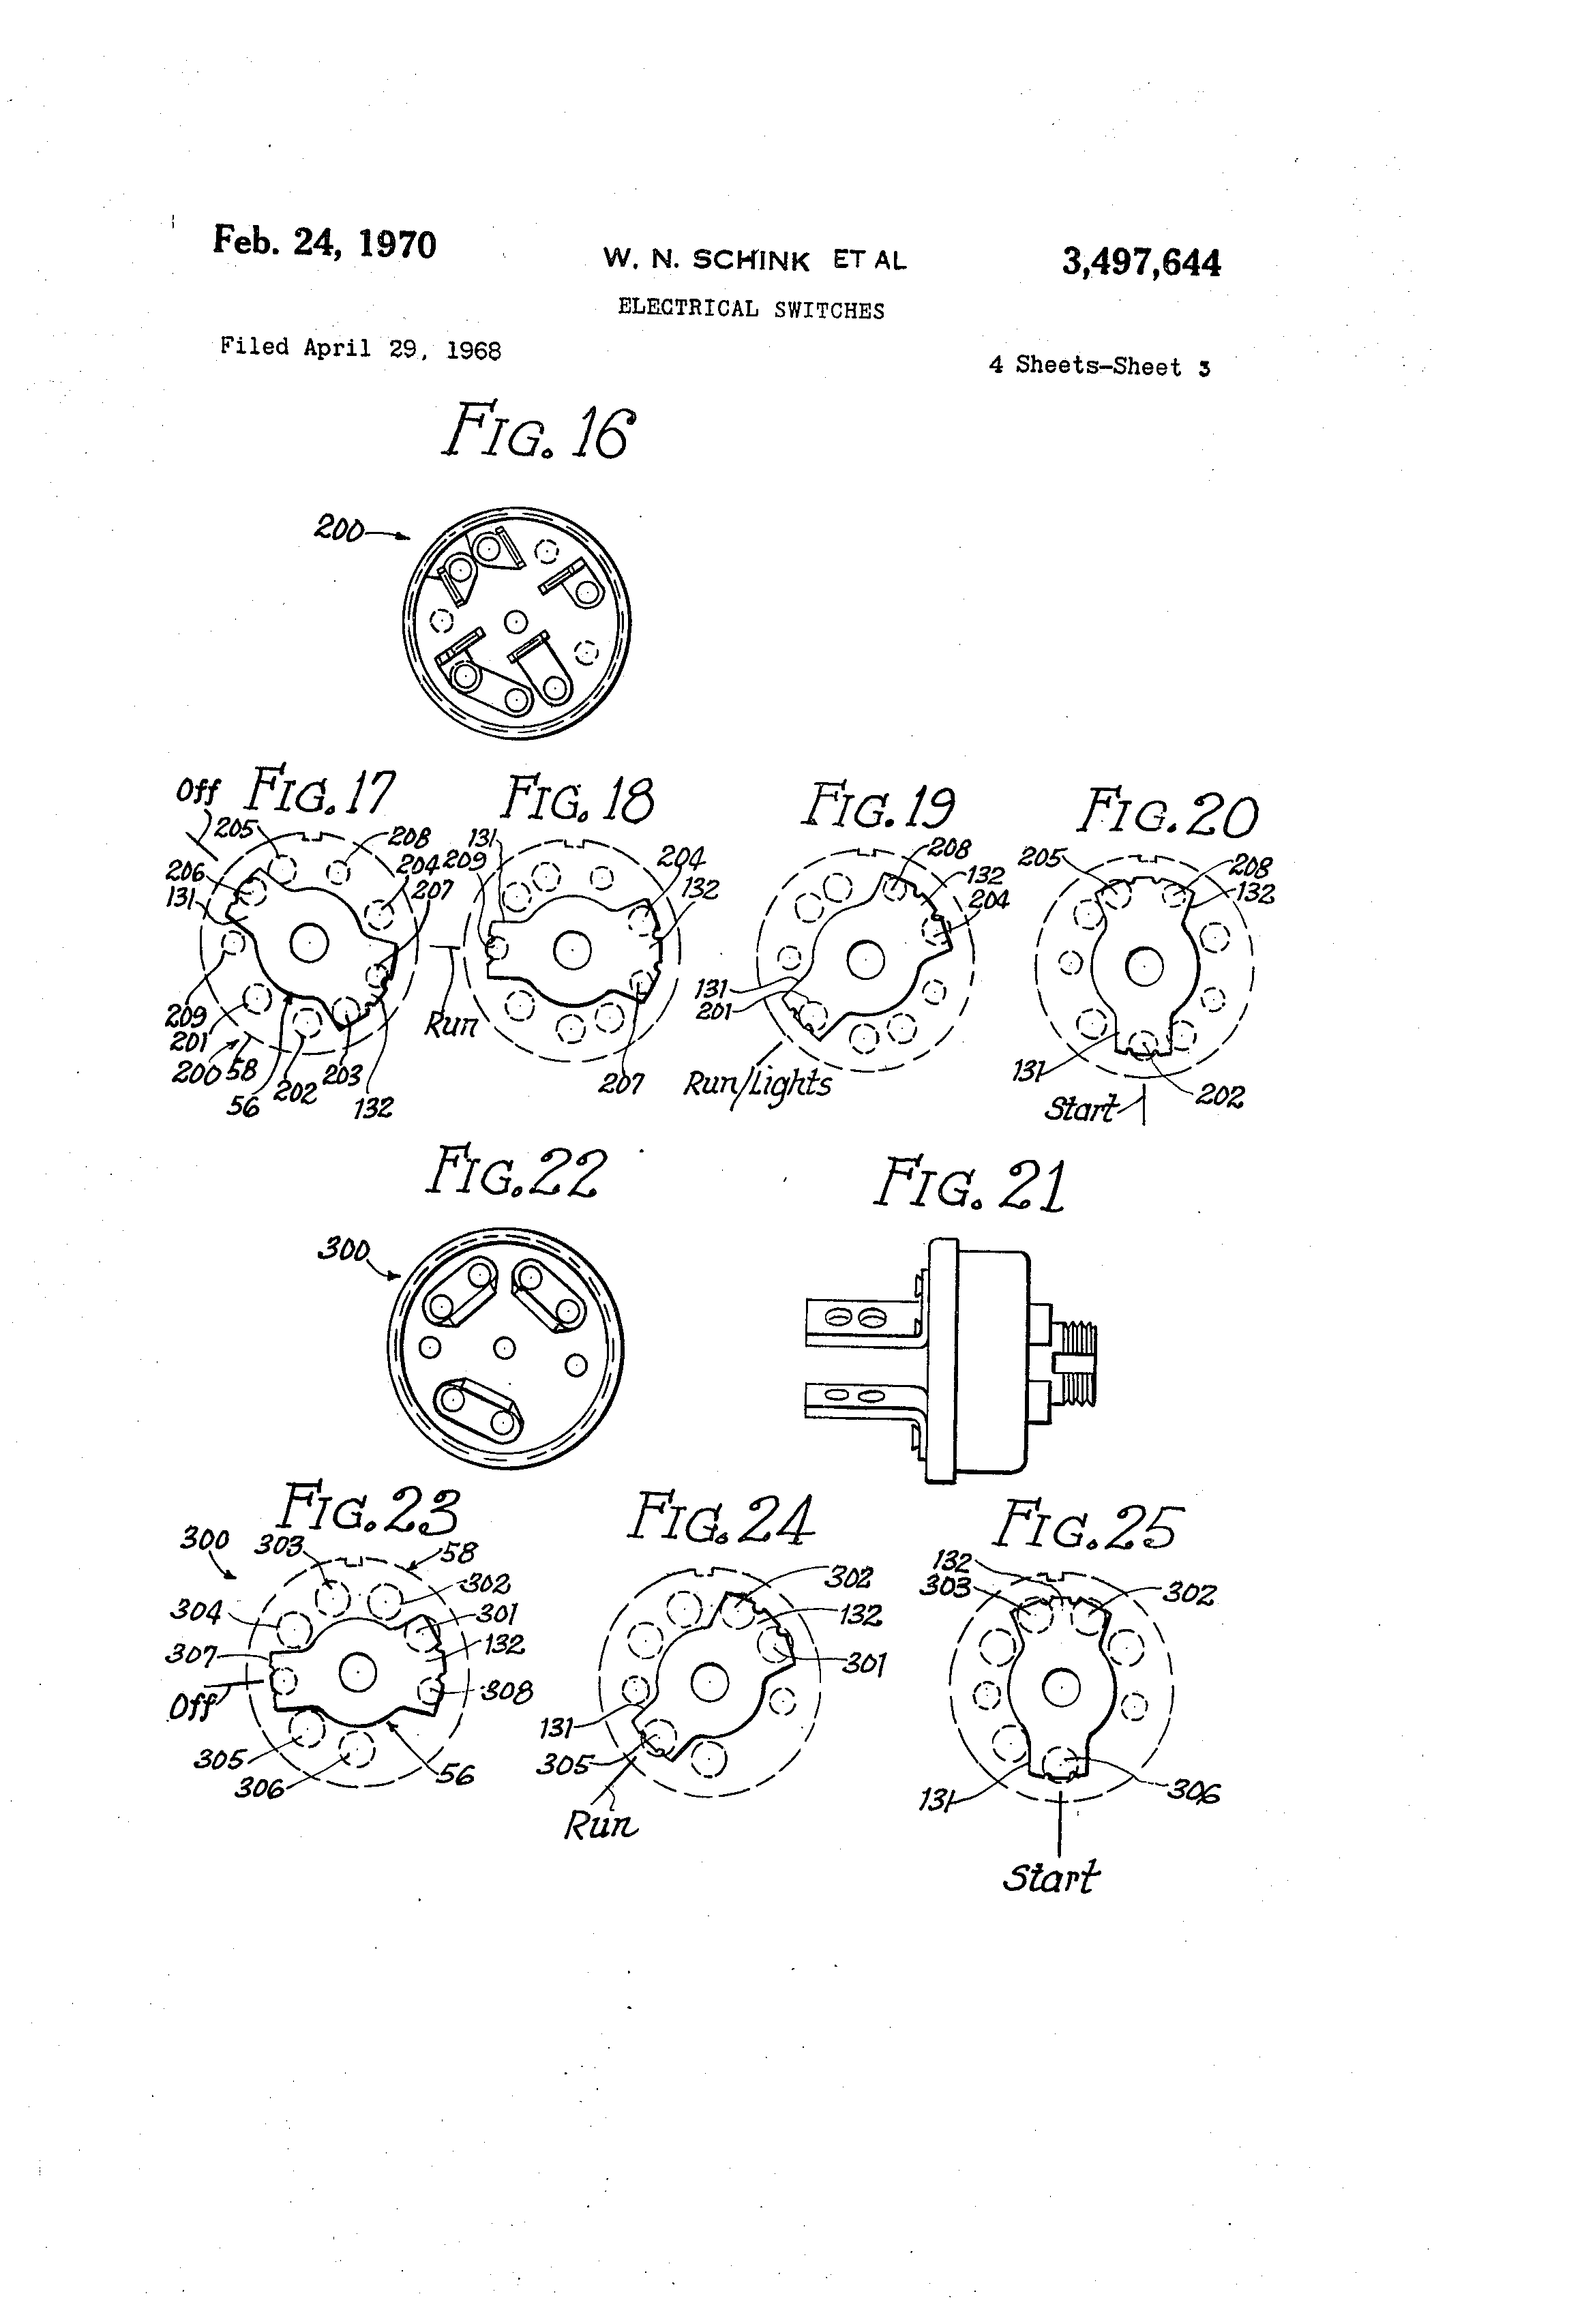 Delta Systems Ignition Switch Wiring Diagram 44 86 Oldsmobile 88 Chevy Alternator Us3497644 2 Patent Electrical Switches Google Patents At Cita